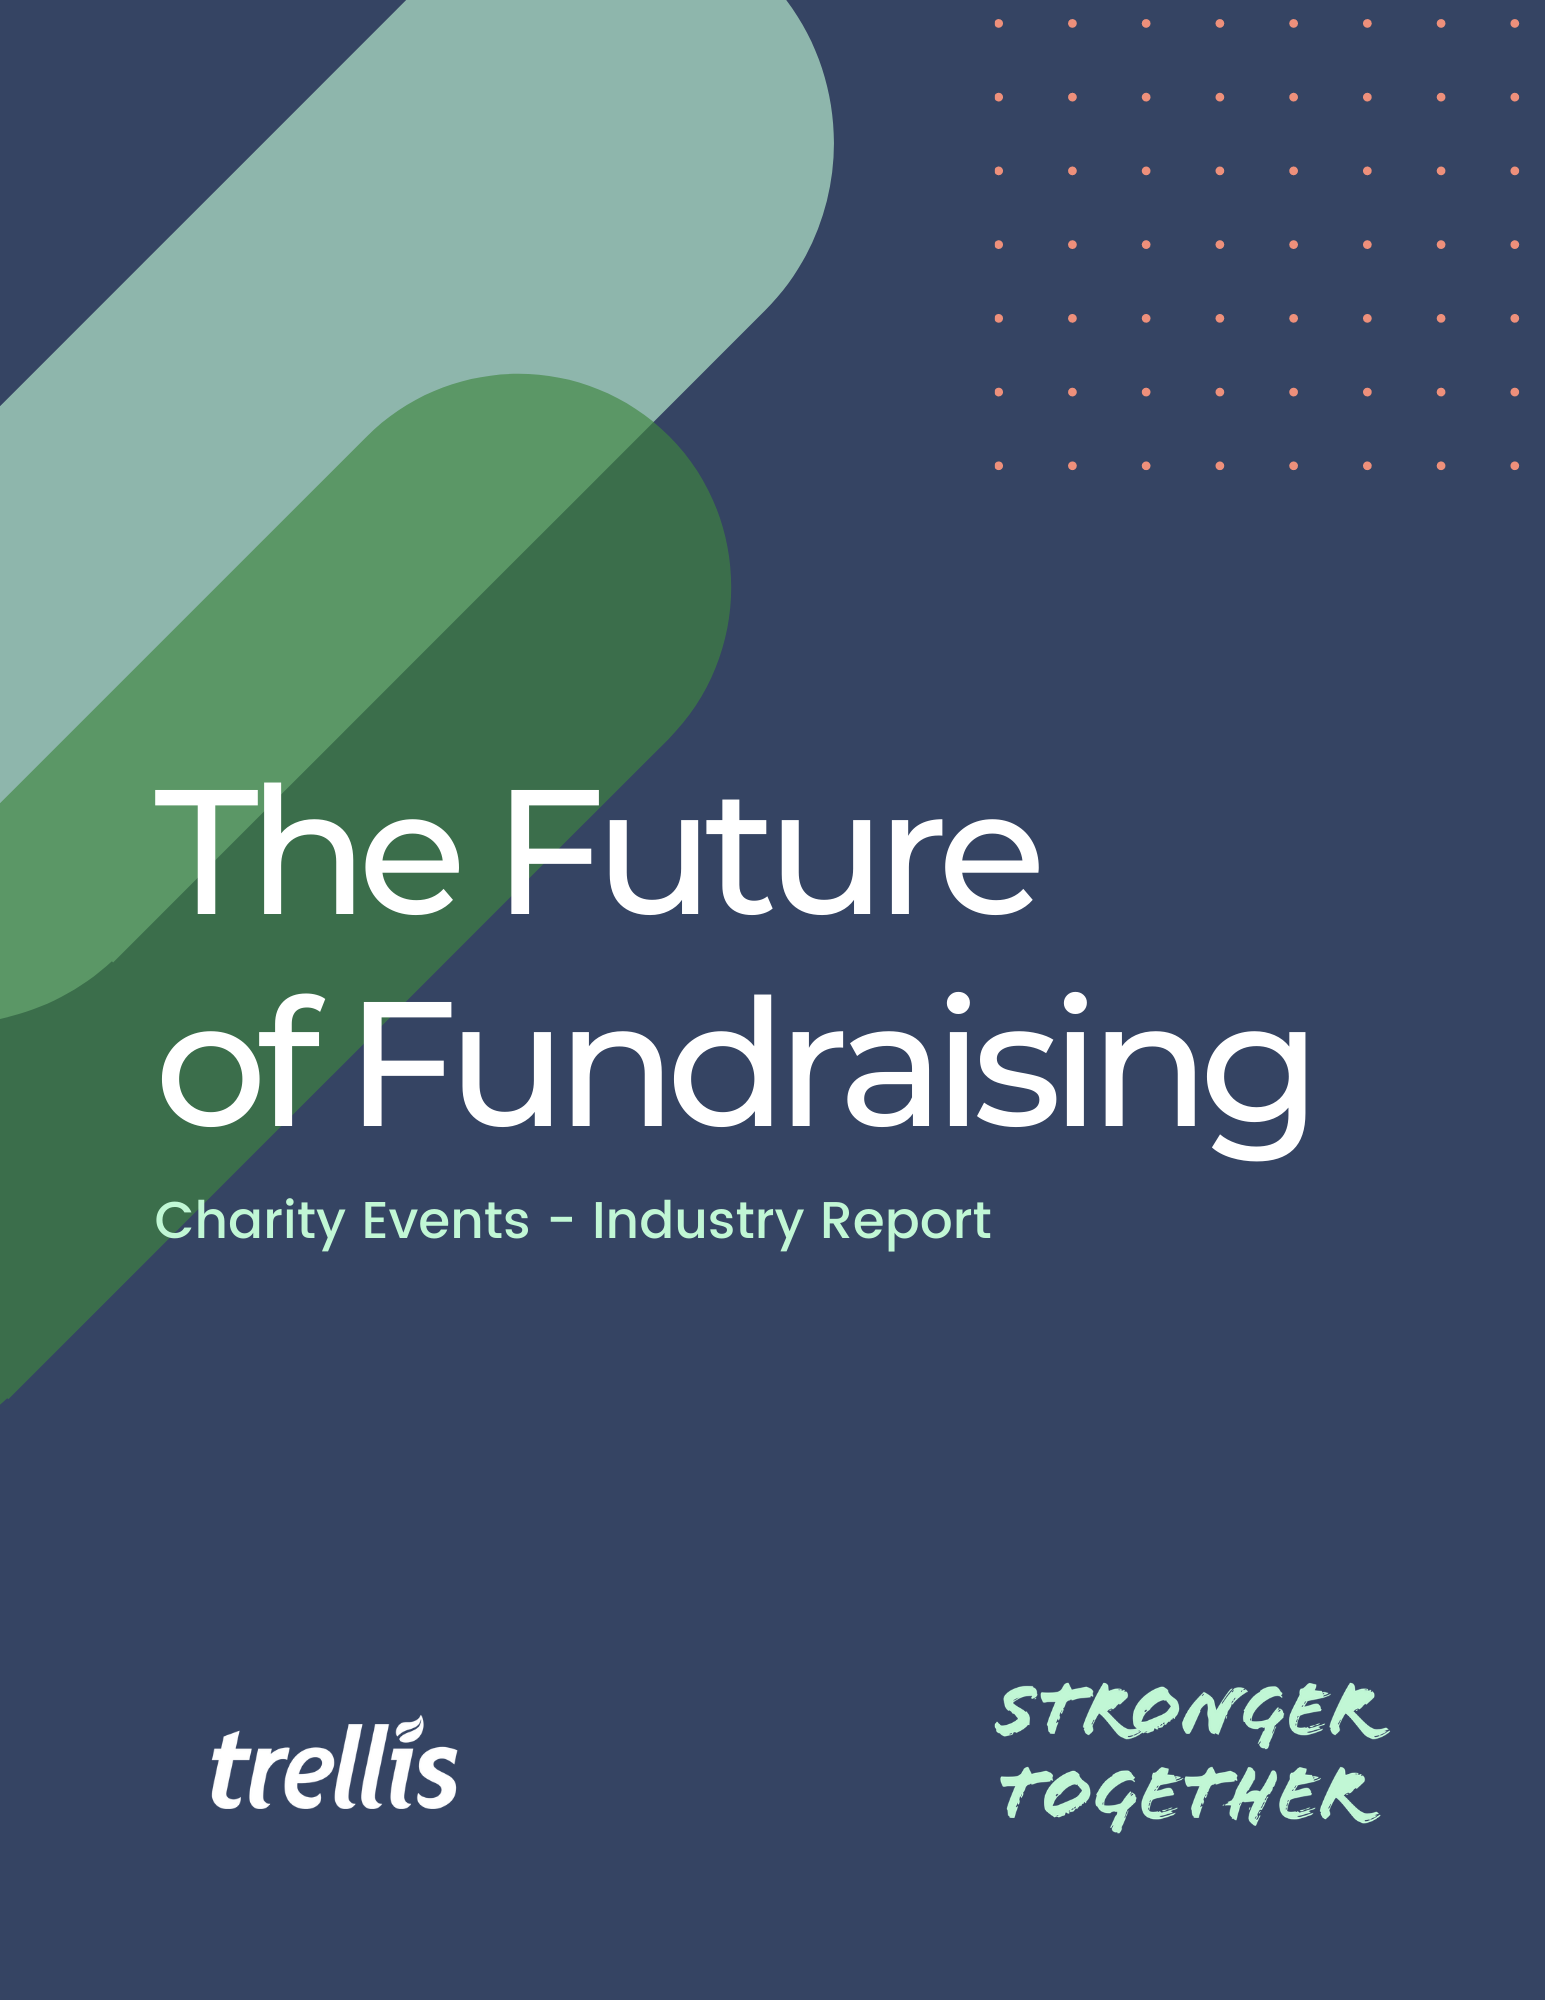 The Future of Fundraising Events Report